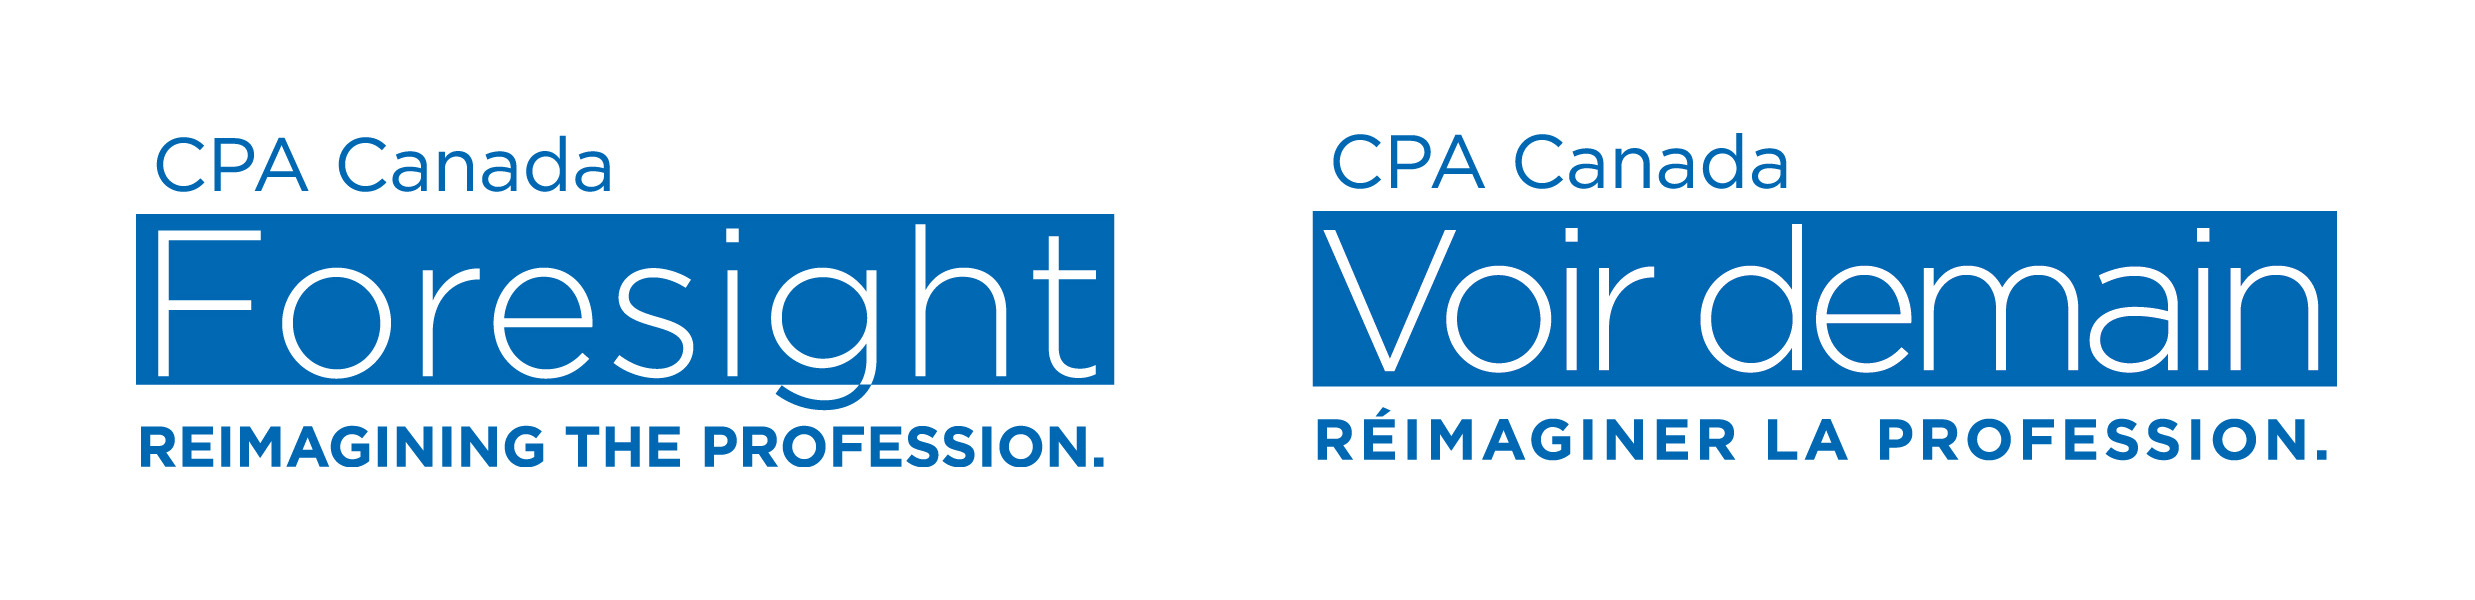 CPA Canada Foresight